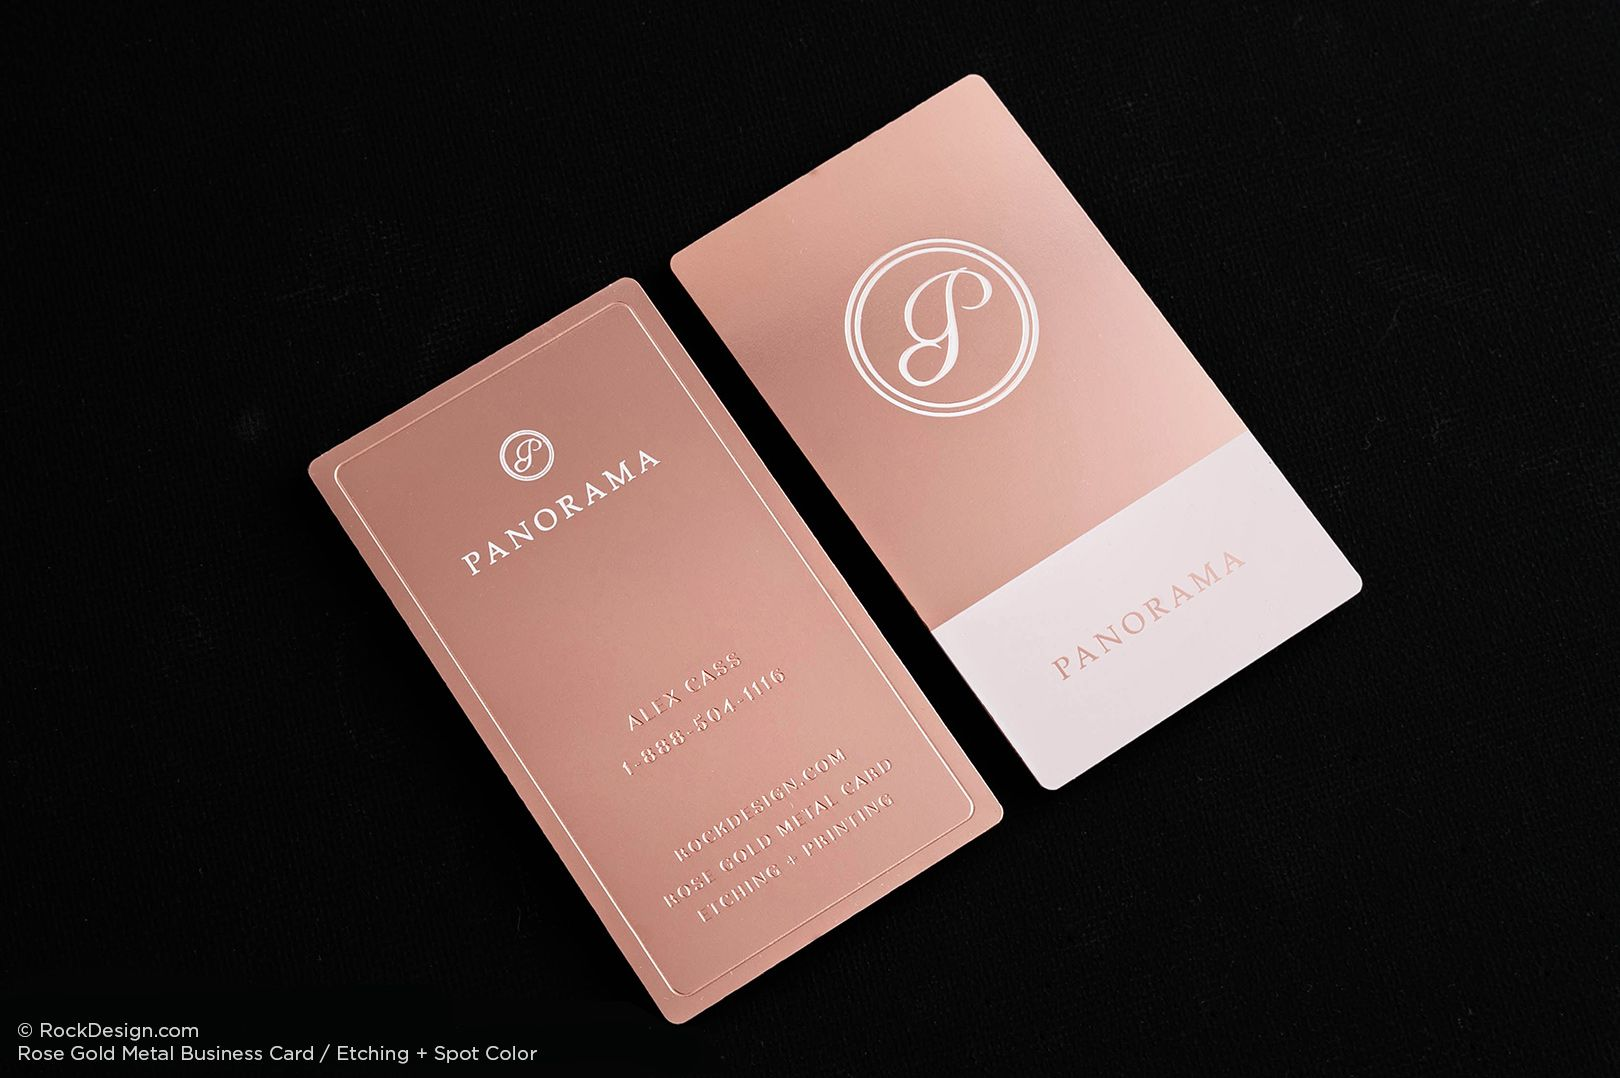 Beautiful and elegant Rose Gold Metal business cards by RockDesign ...